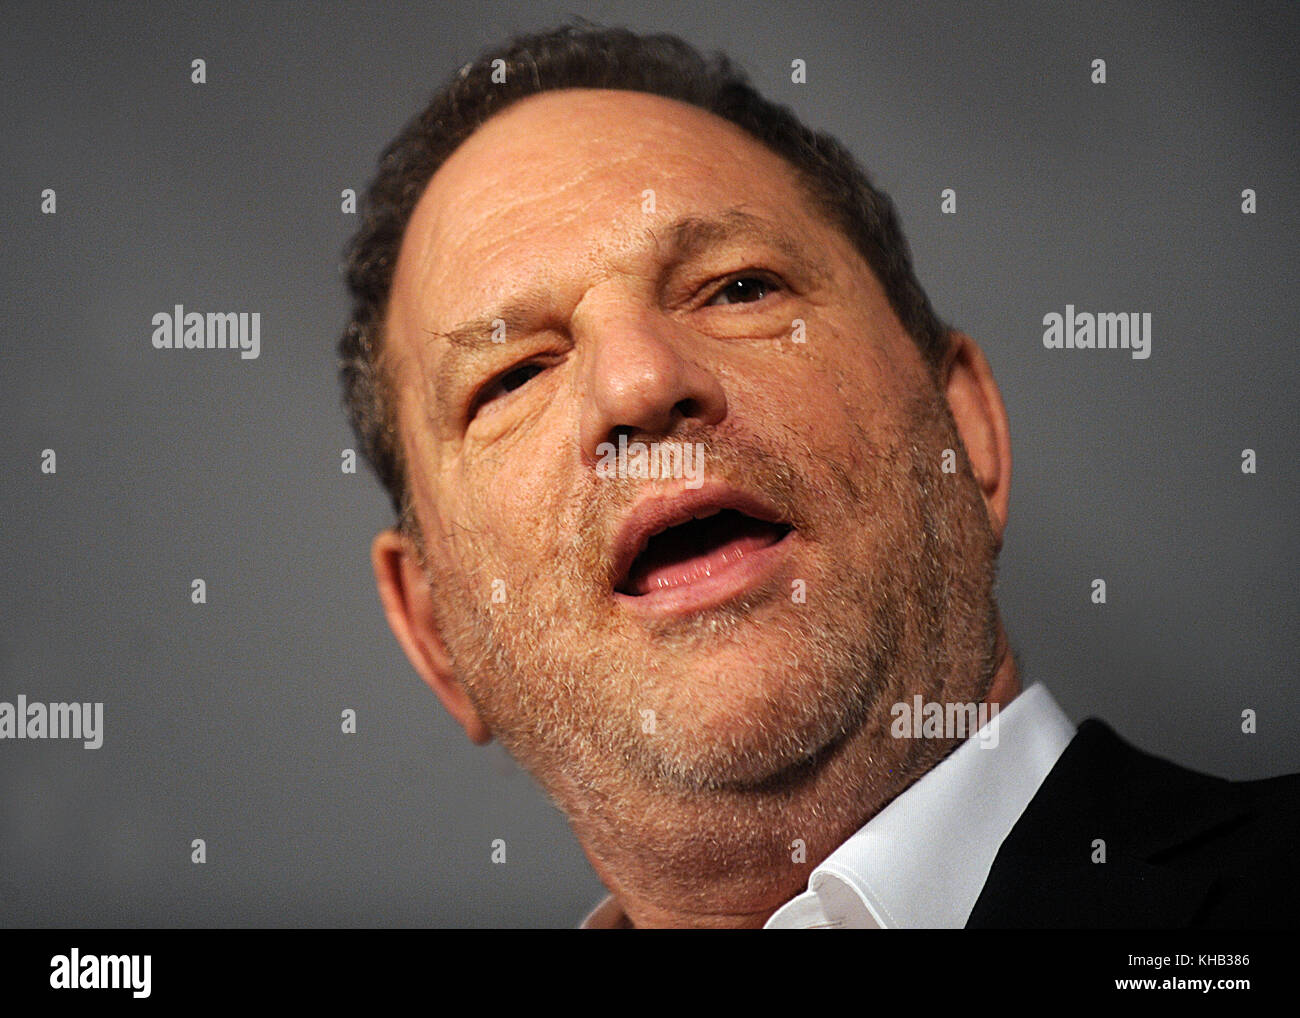 NEW YORK, NY - JUNE 10: Harvey Weinstein at the 8th Annual 'Made In NY Awards' at Gracie Mansion on June - Stock Image